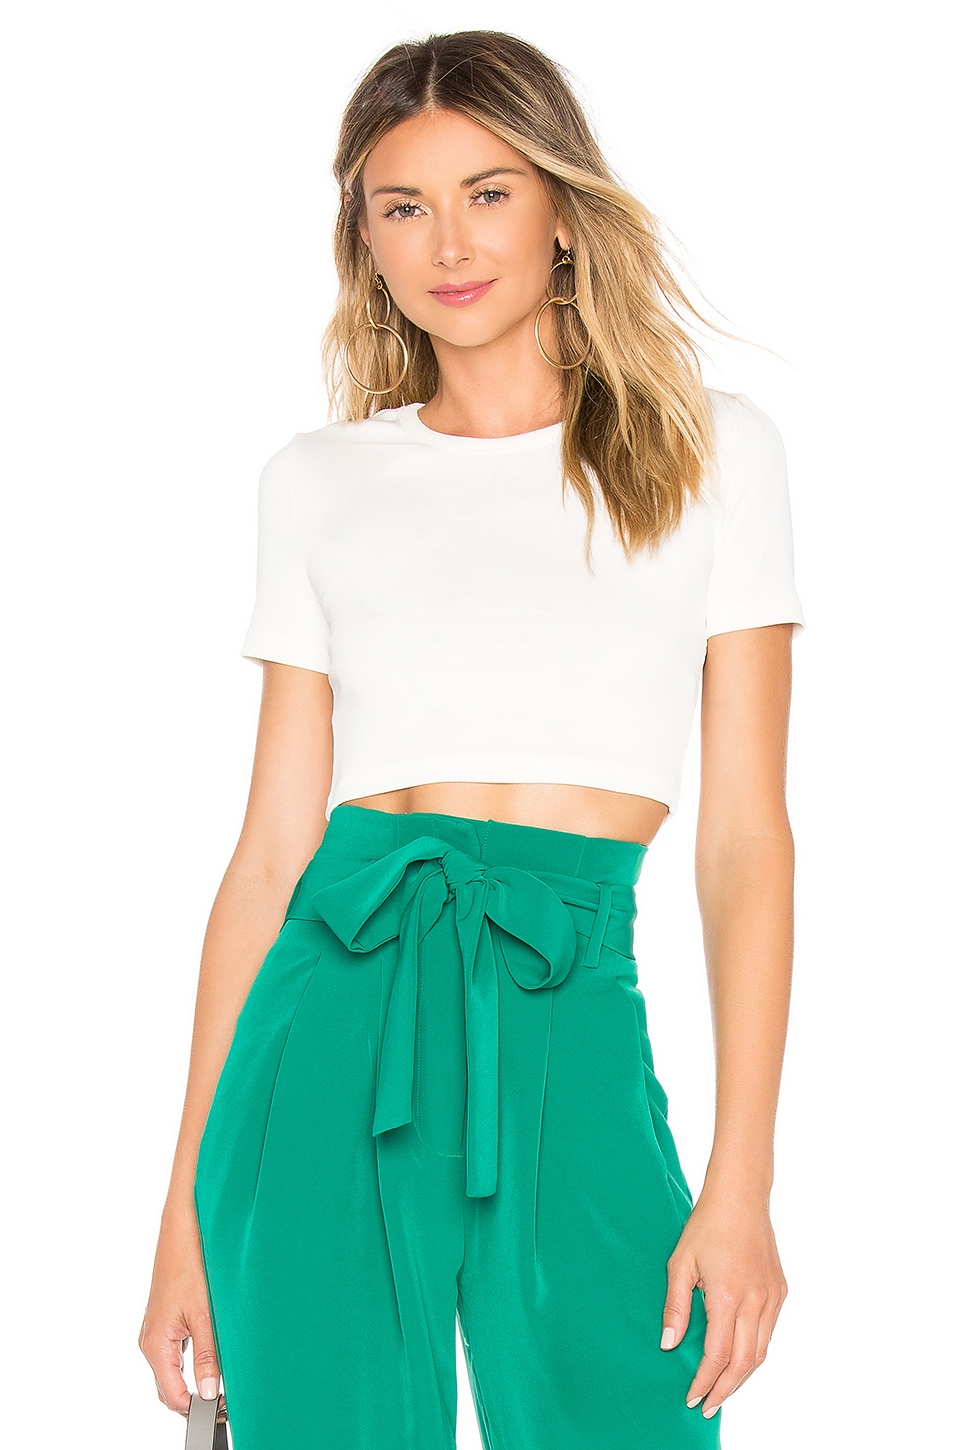 Chrissy Teigen x REVOLVE Ezra Cropped Top in White